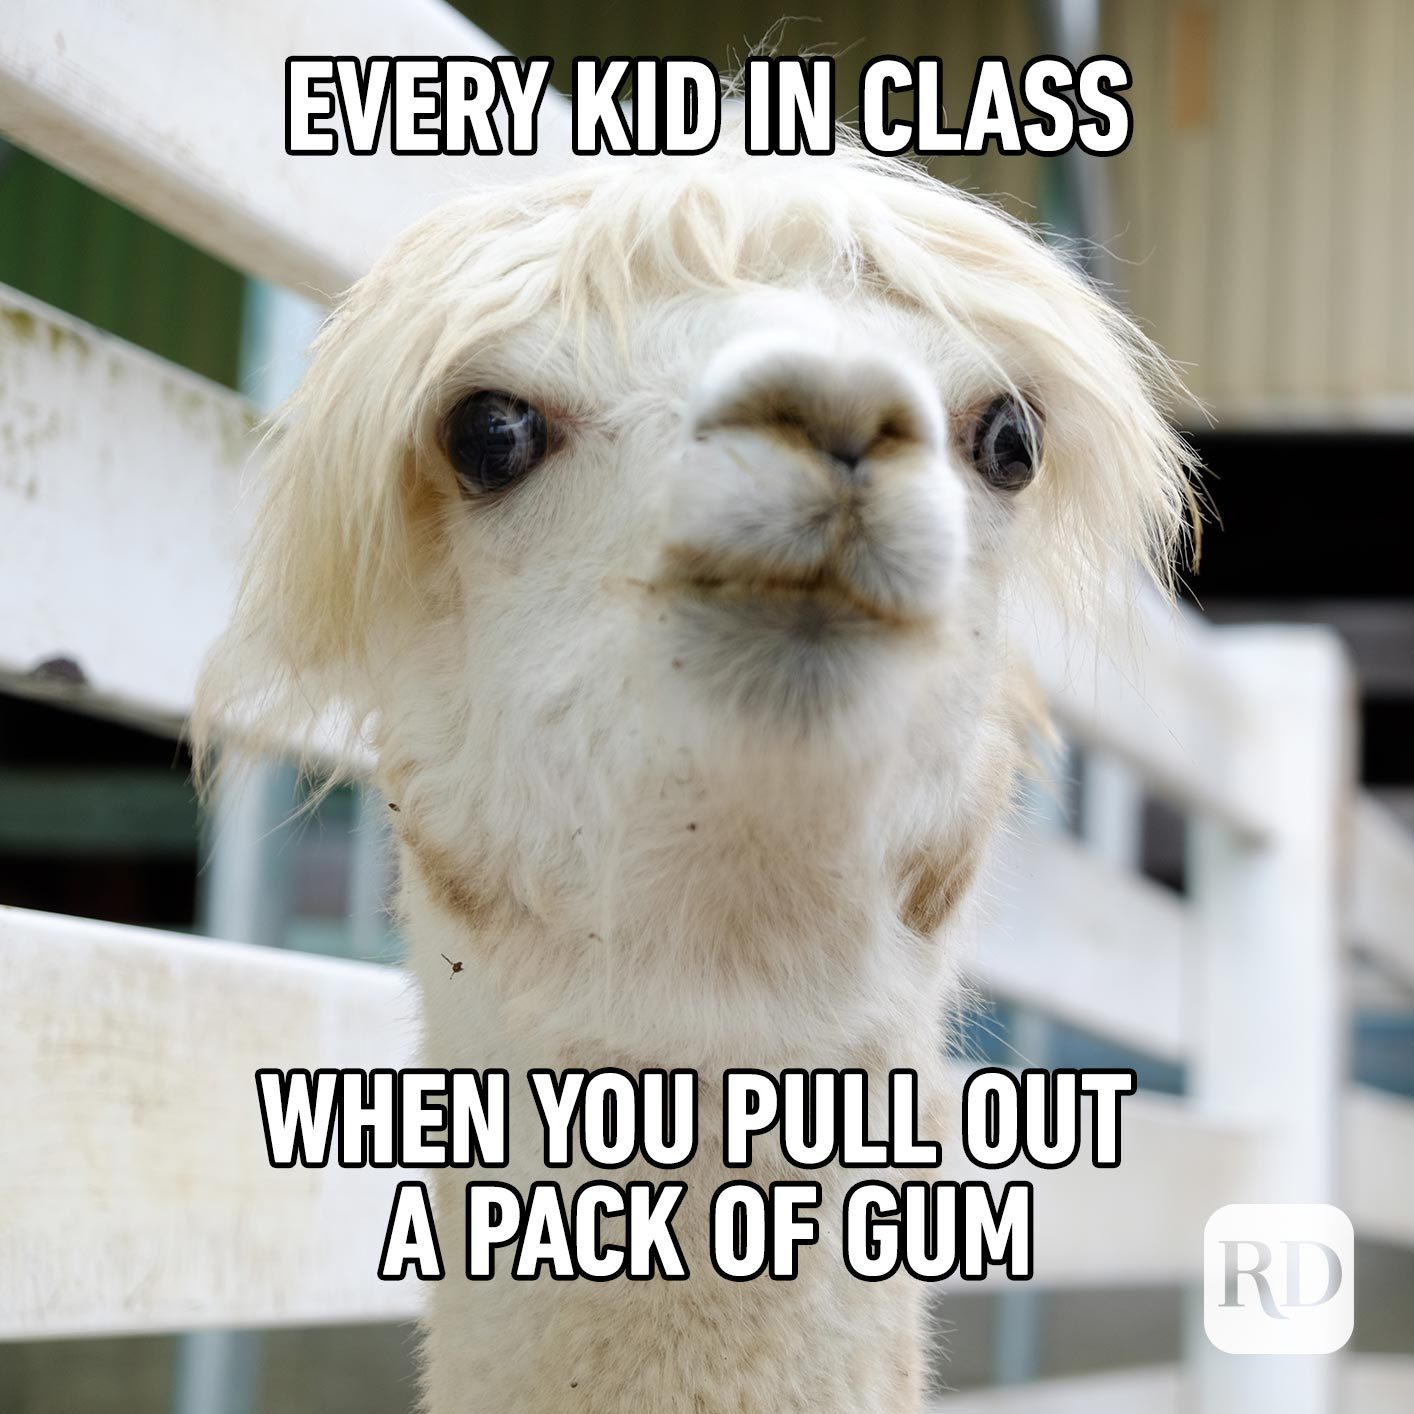 Alpaca peeking its head up. Meme text: Every kid in class when you pull out a pack of gum